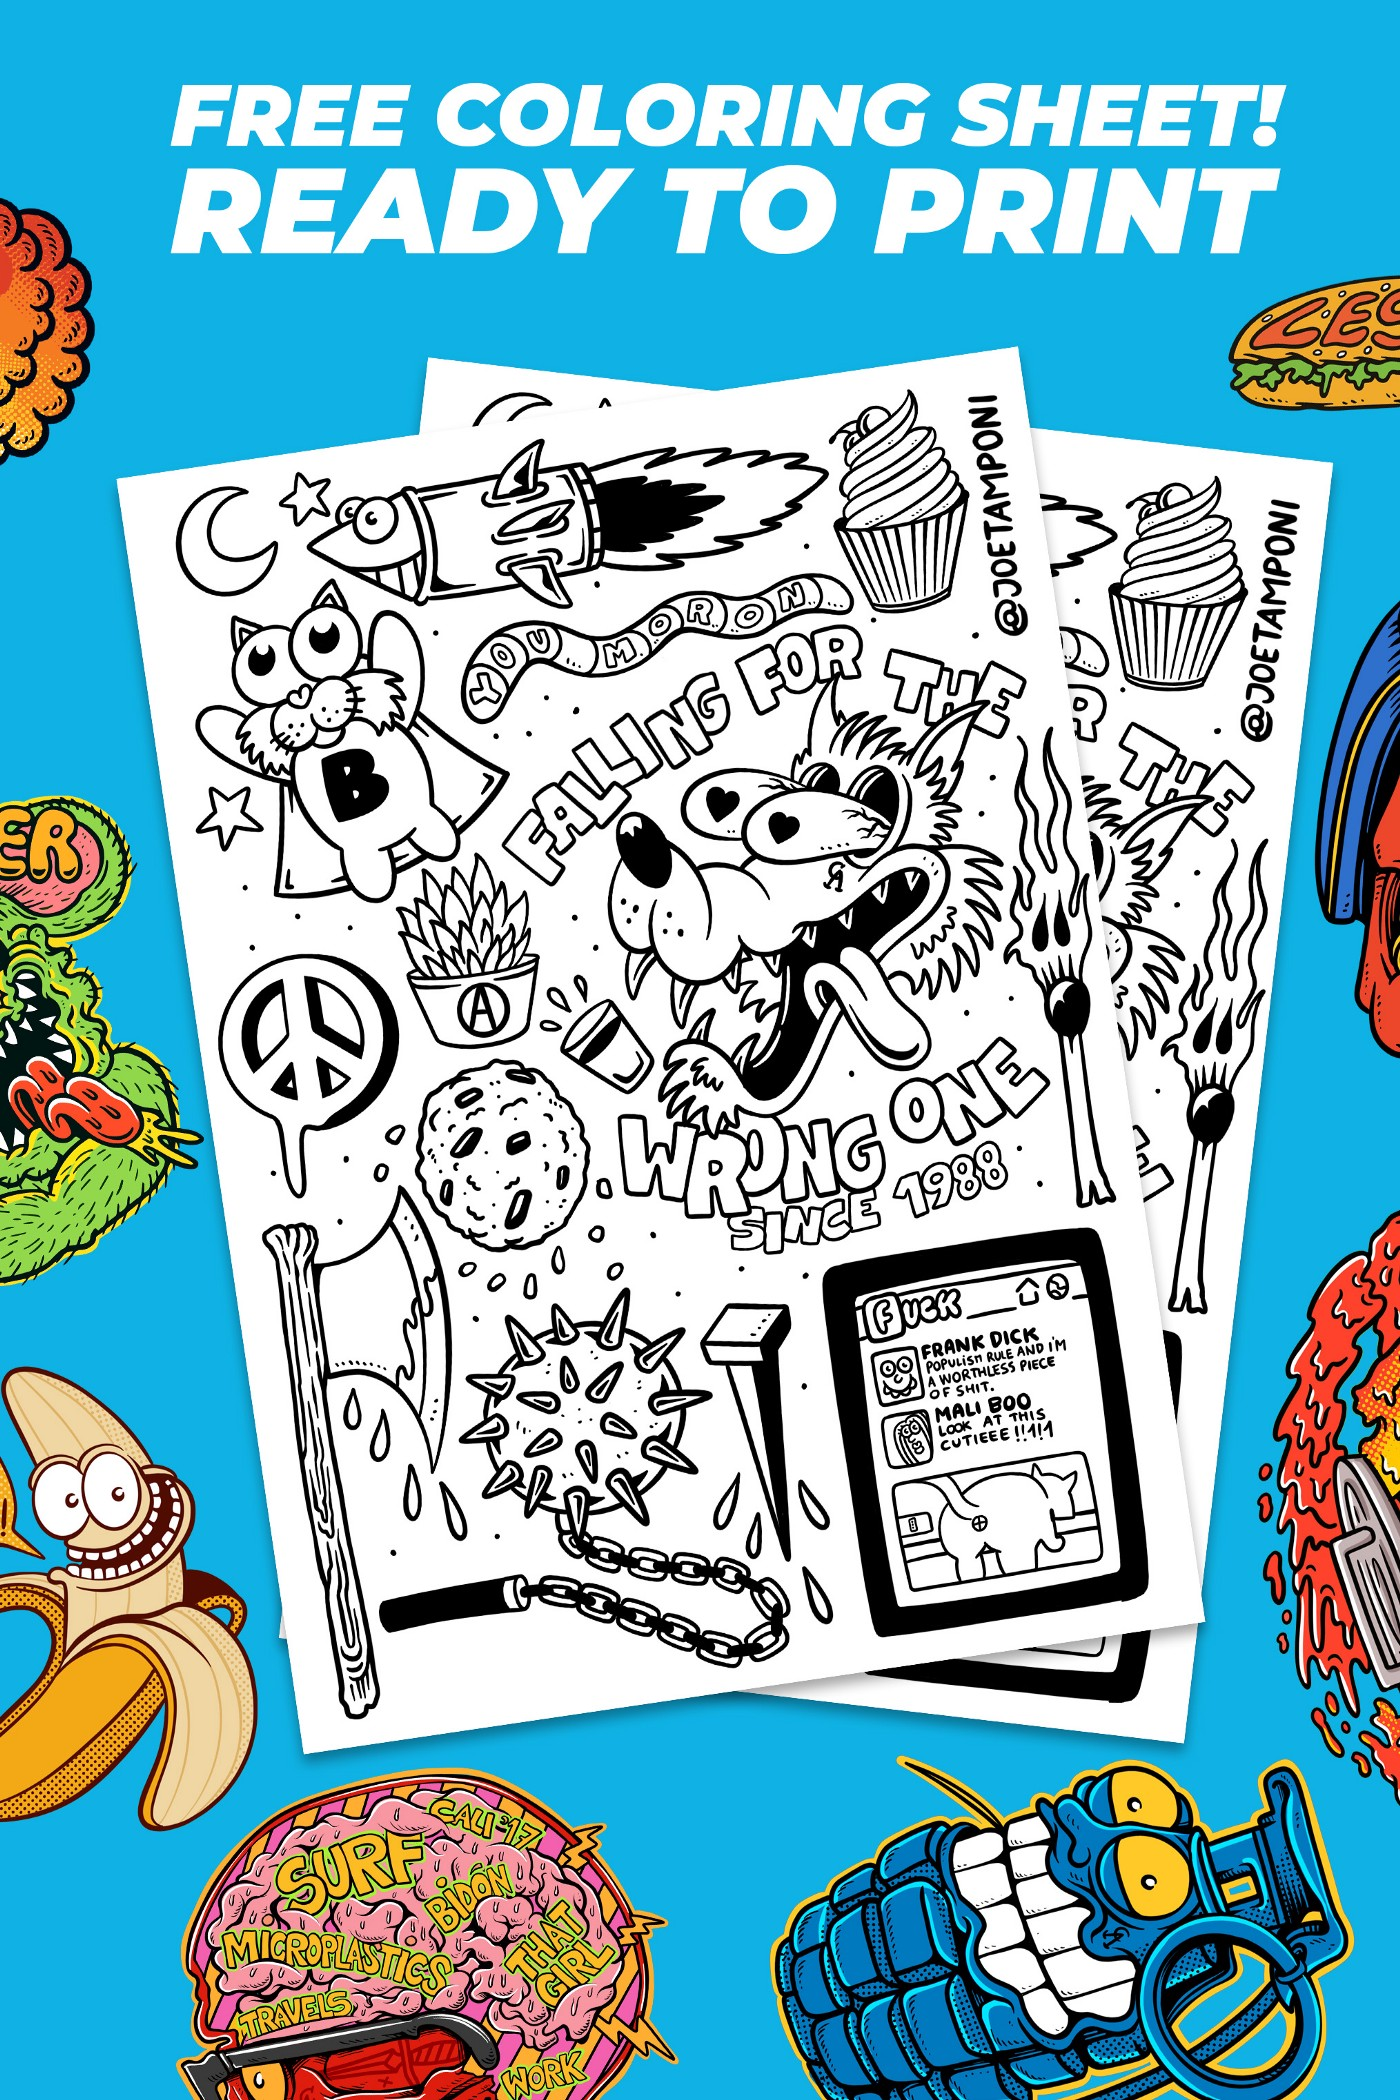 Free coloring page—Illustrated doodle project #1